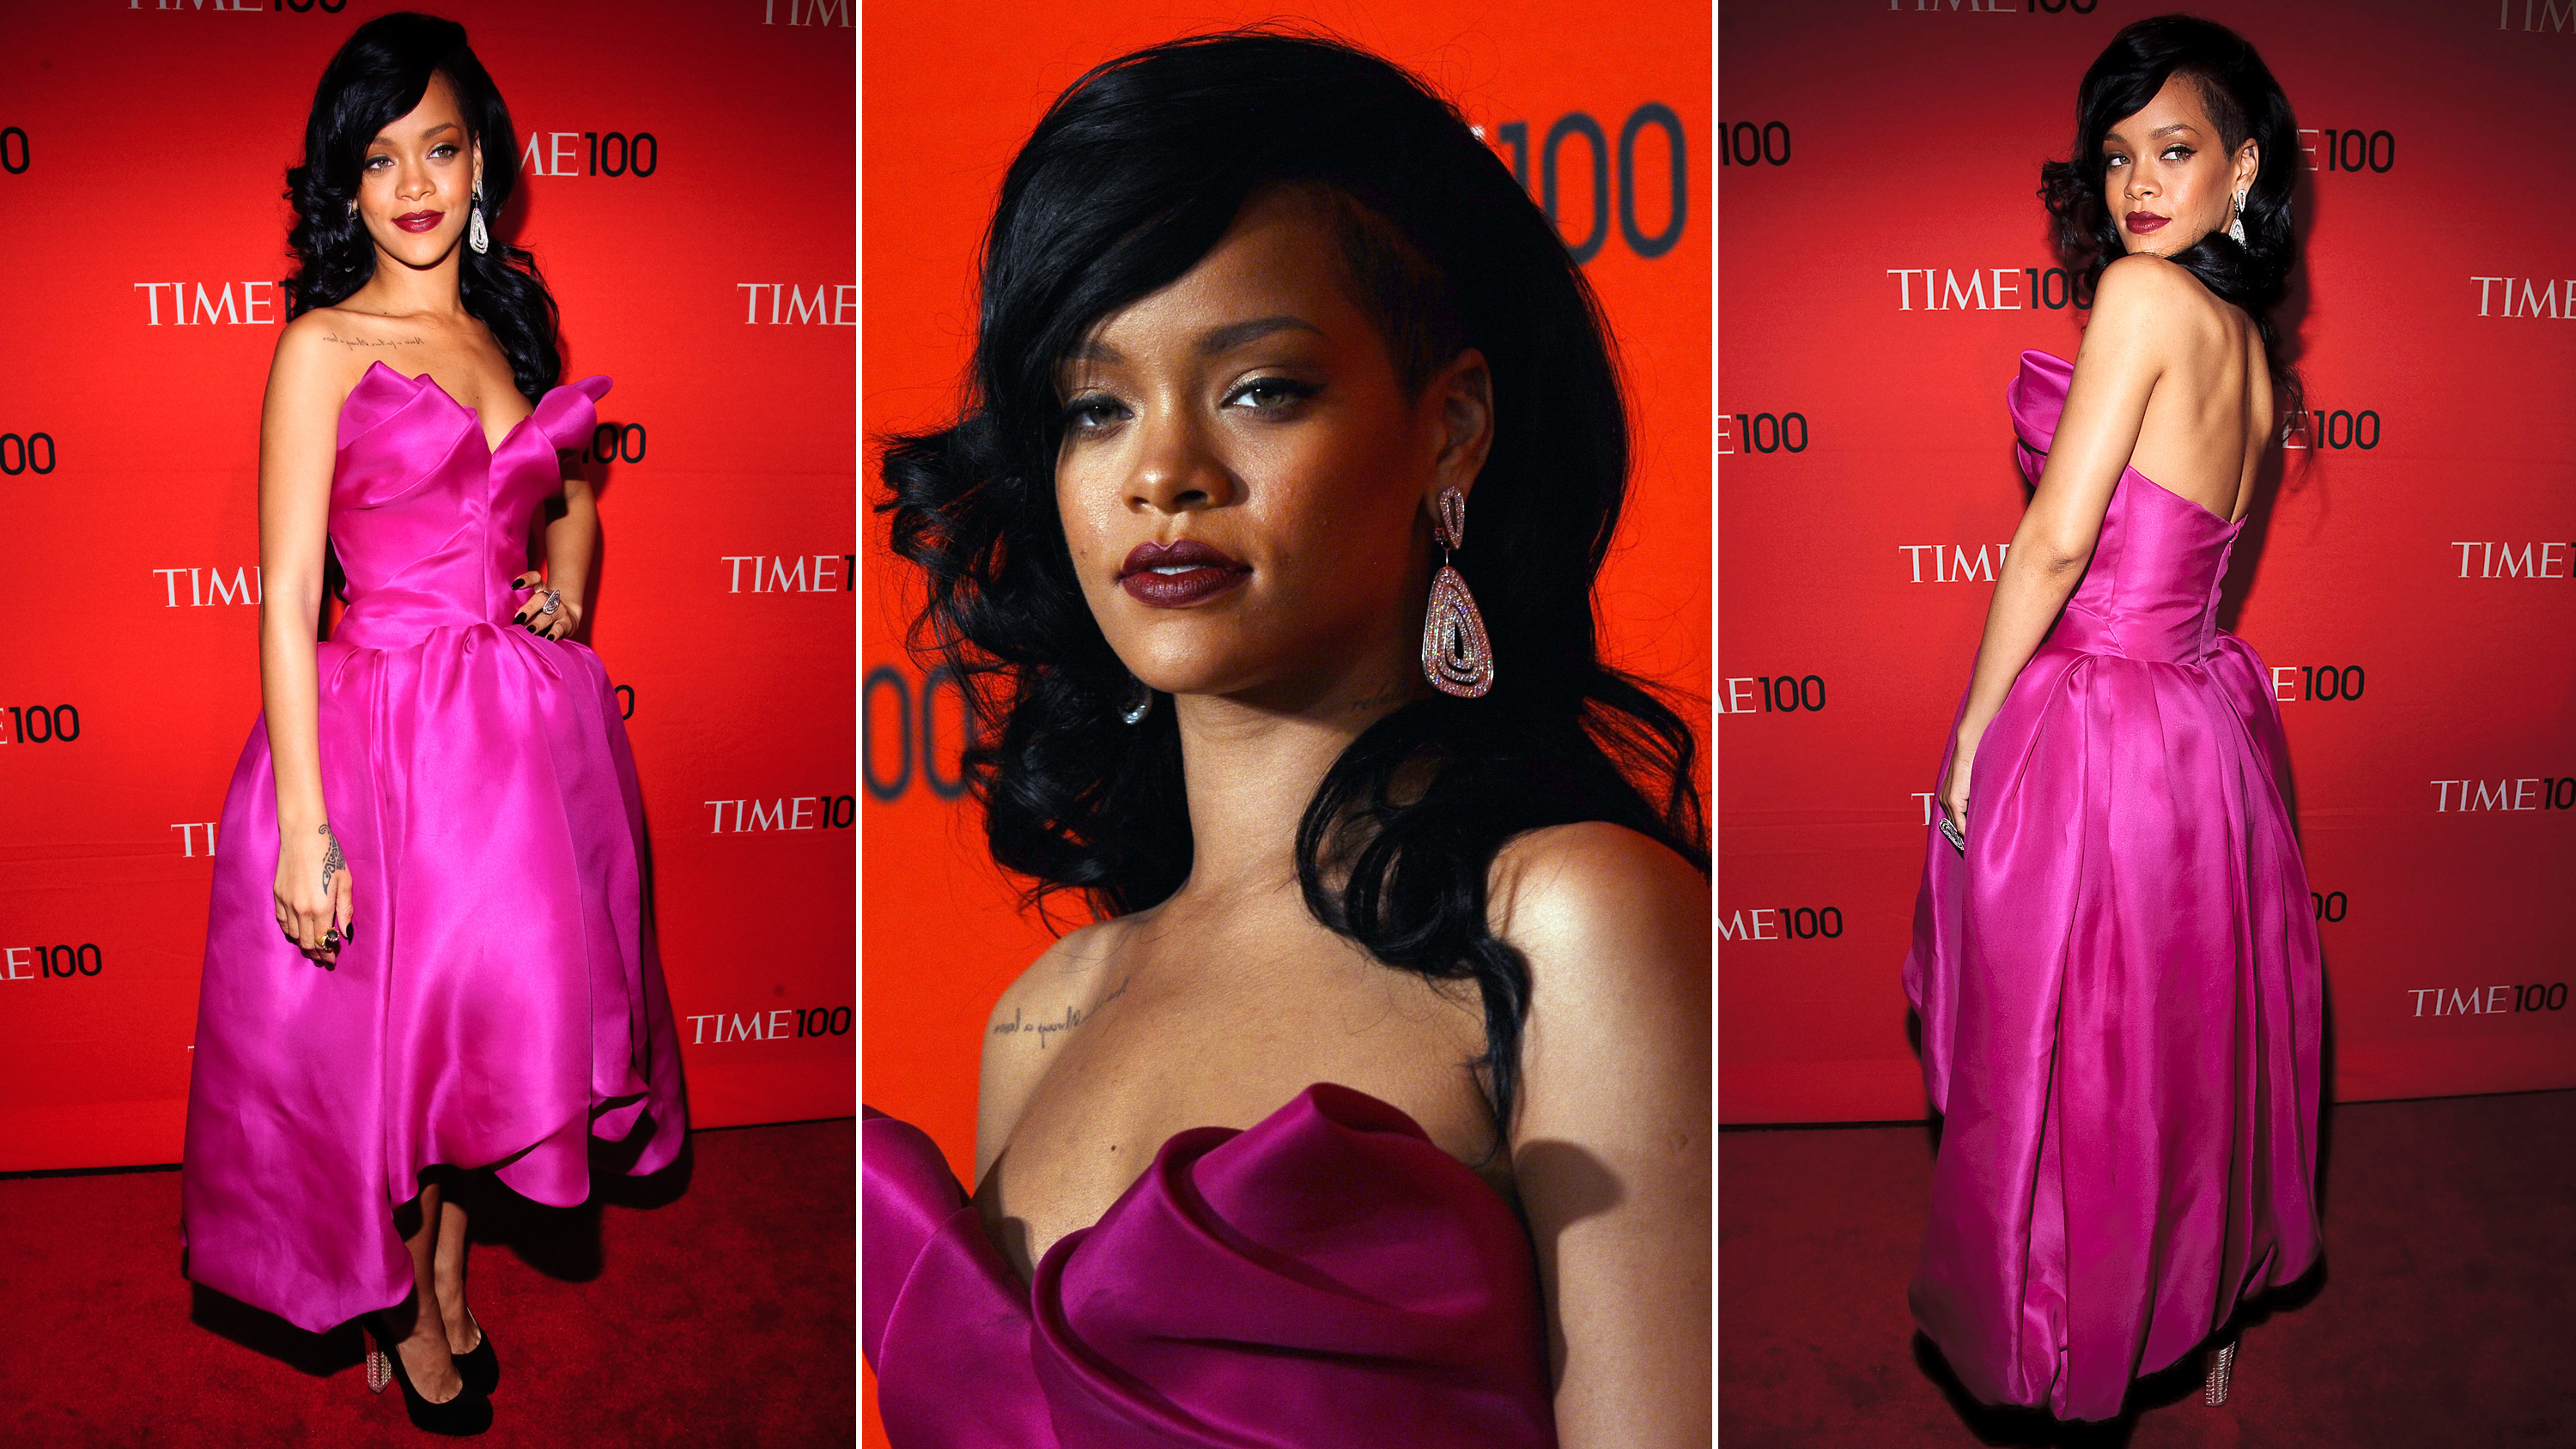 rihanna-time-100-gowns